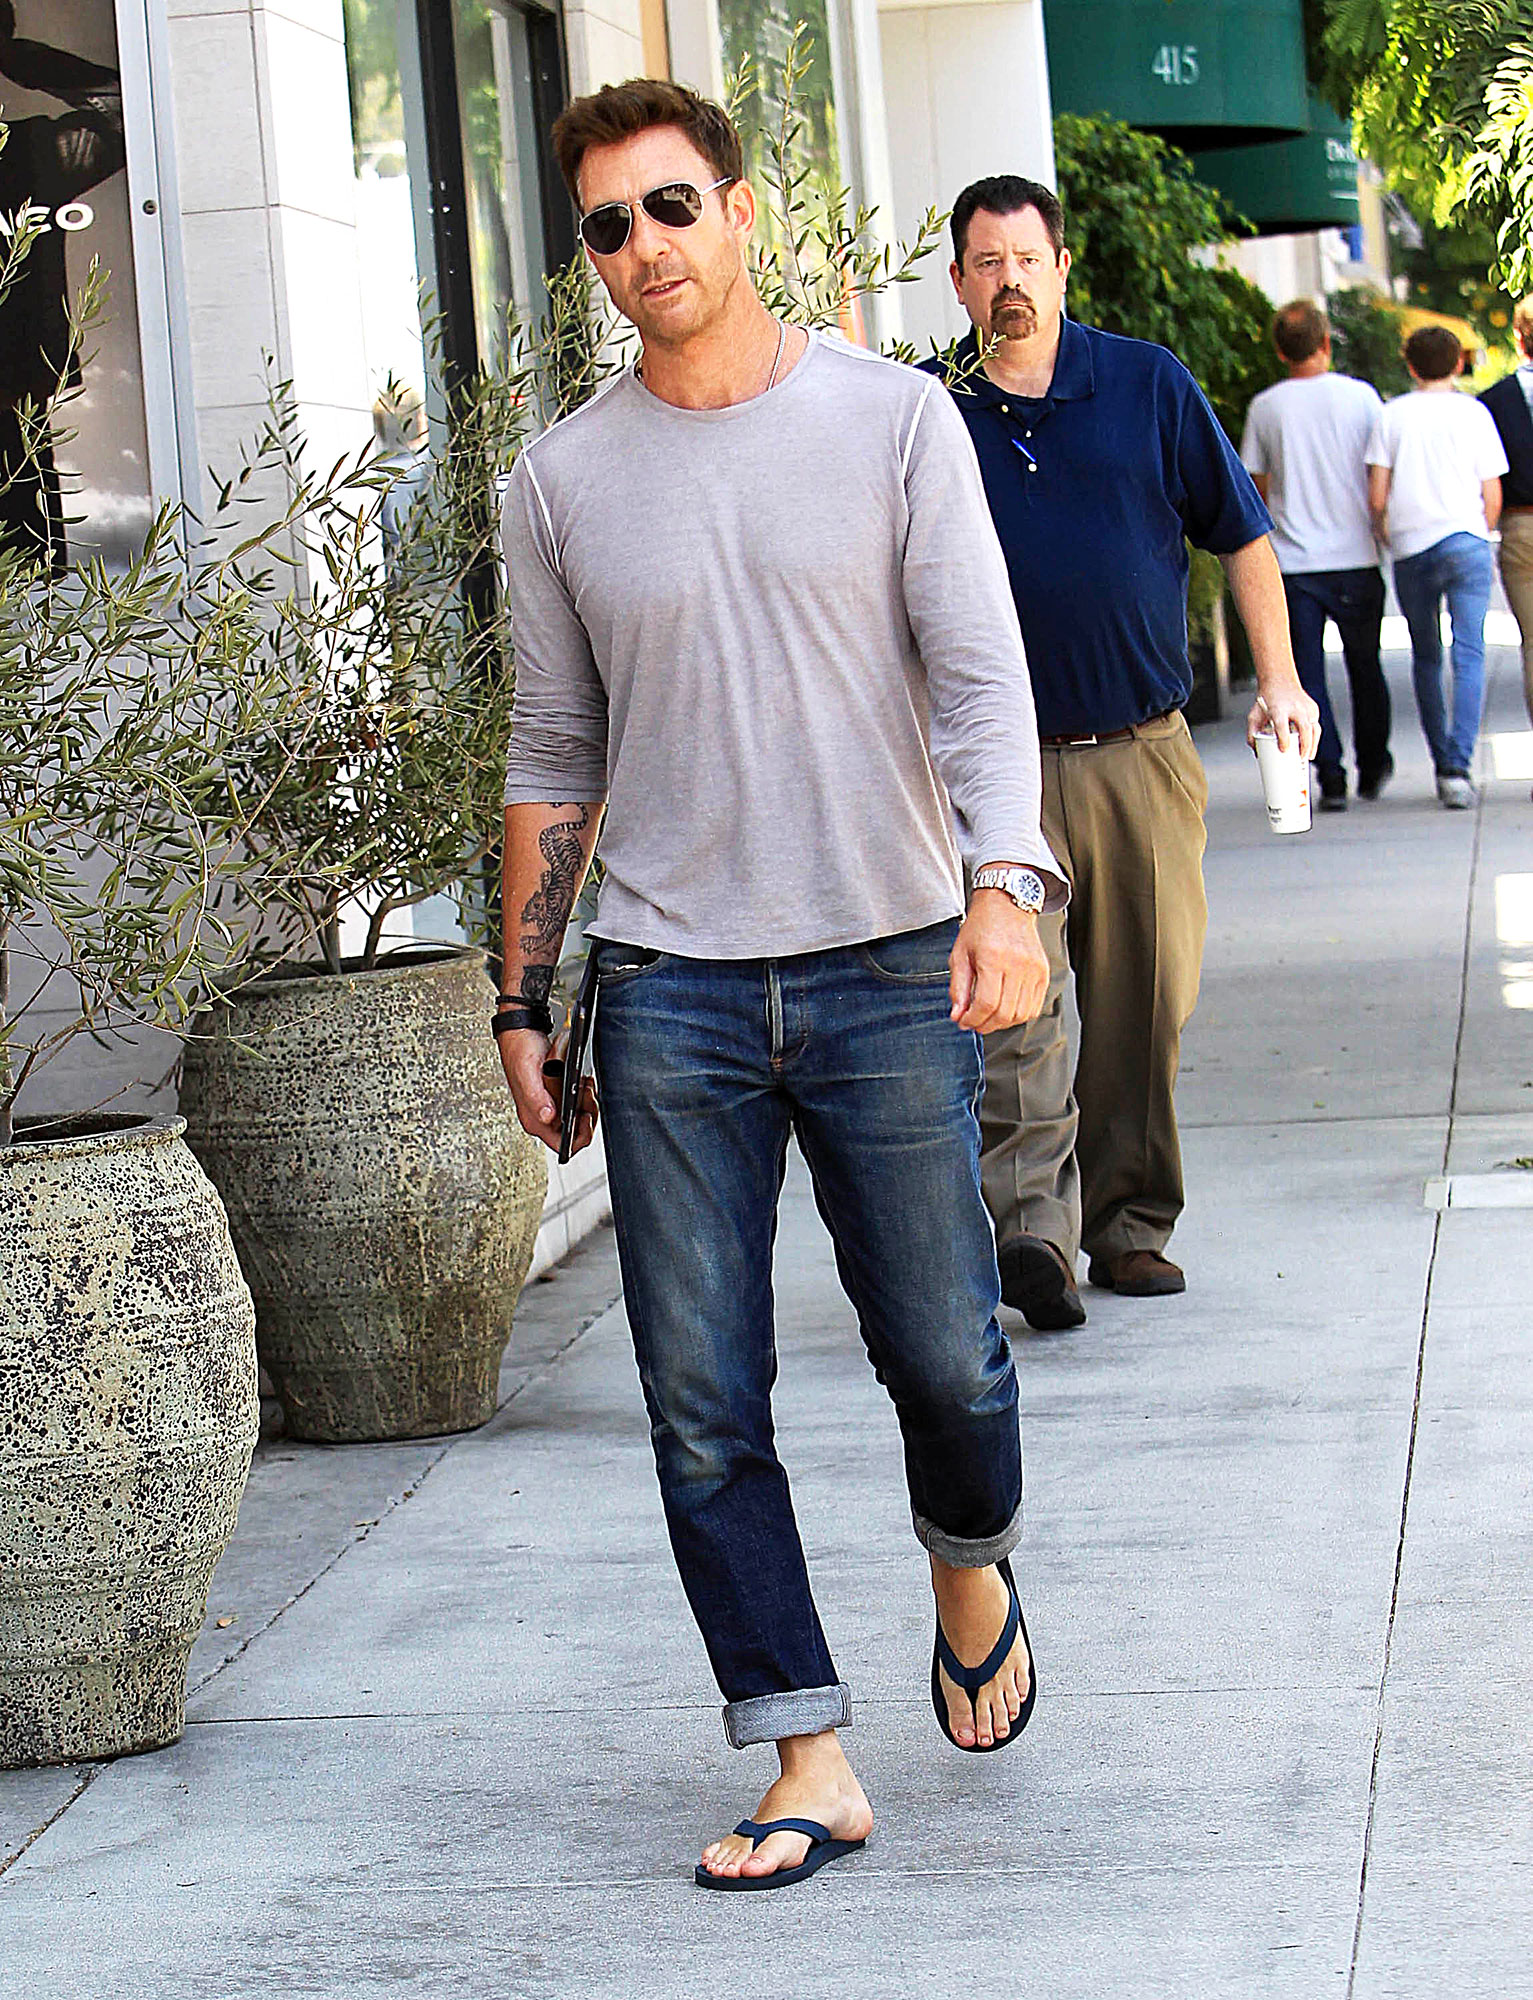 Dylan McDermott's New Huge Tattoo Leads Our List of Crazy Celeb Ink - Dylan McDermott is seen on August 3, 2018 in Los Angeles, CA.